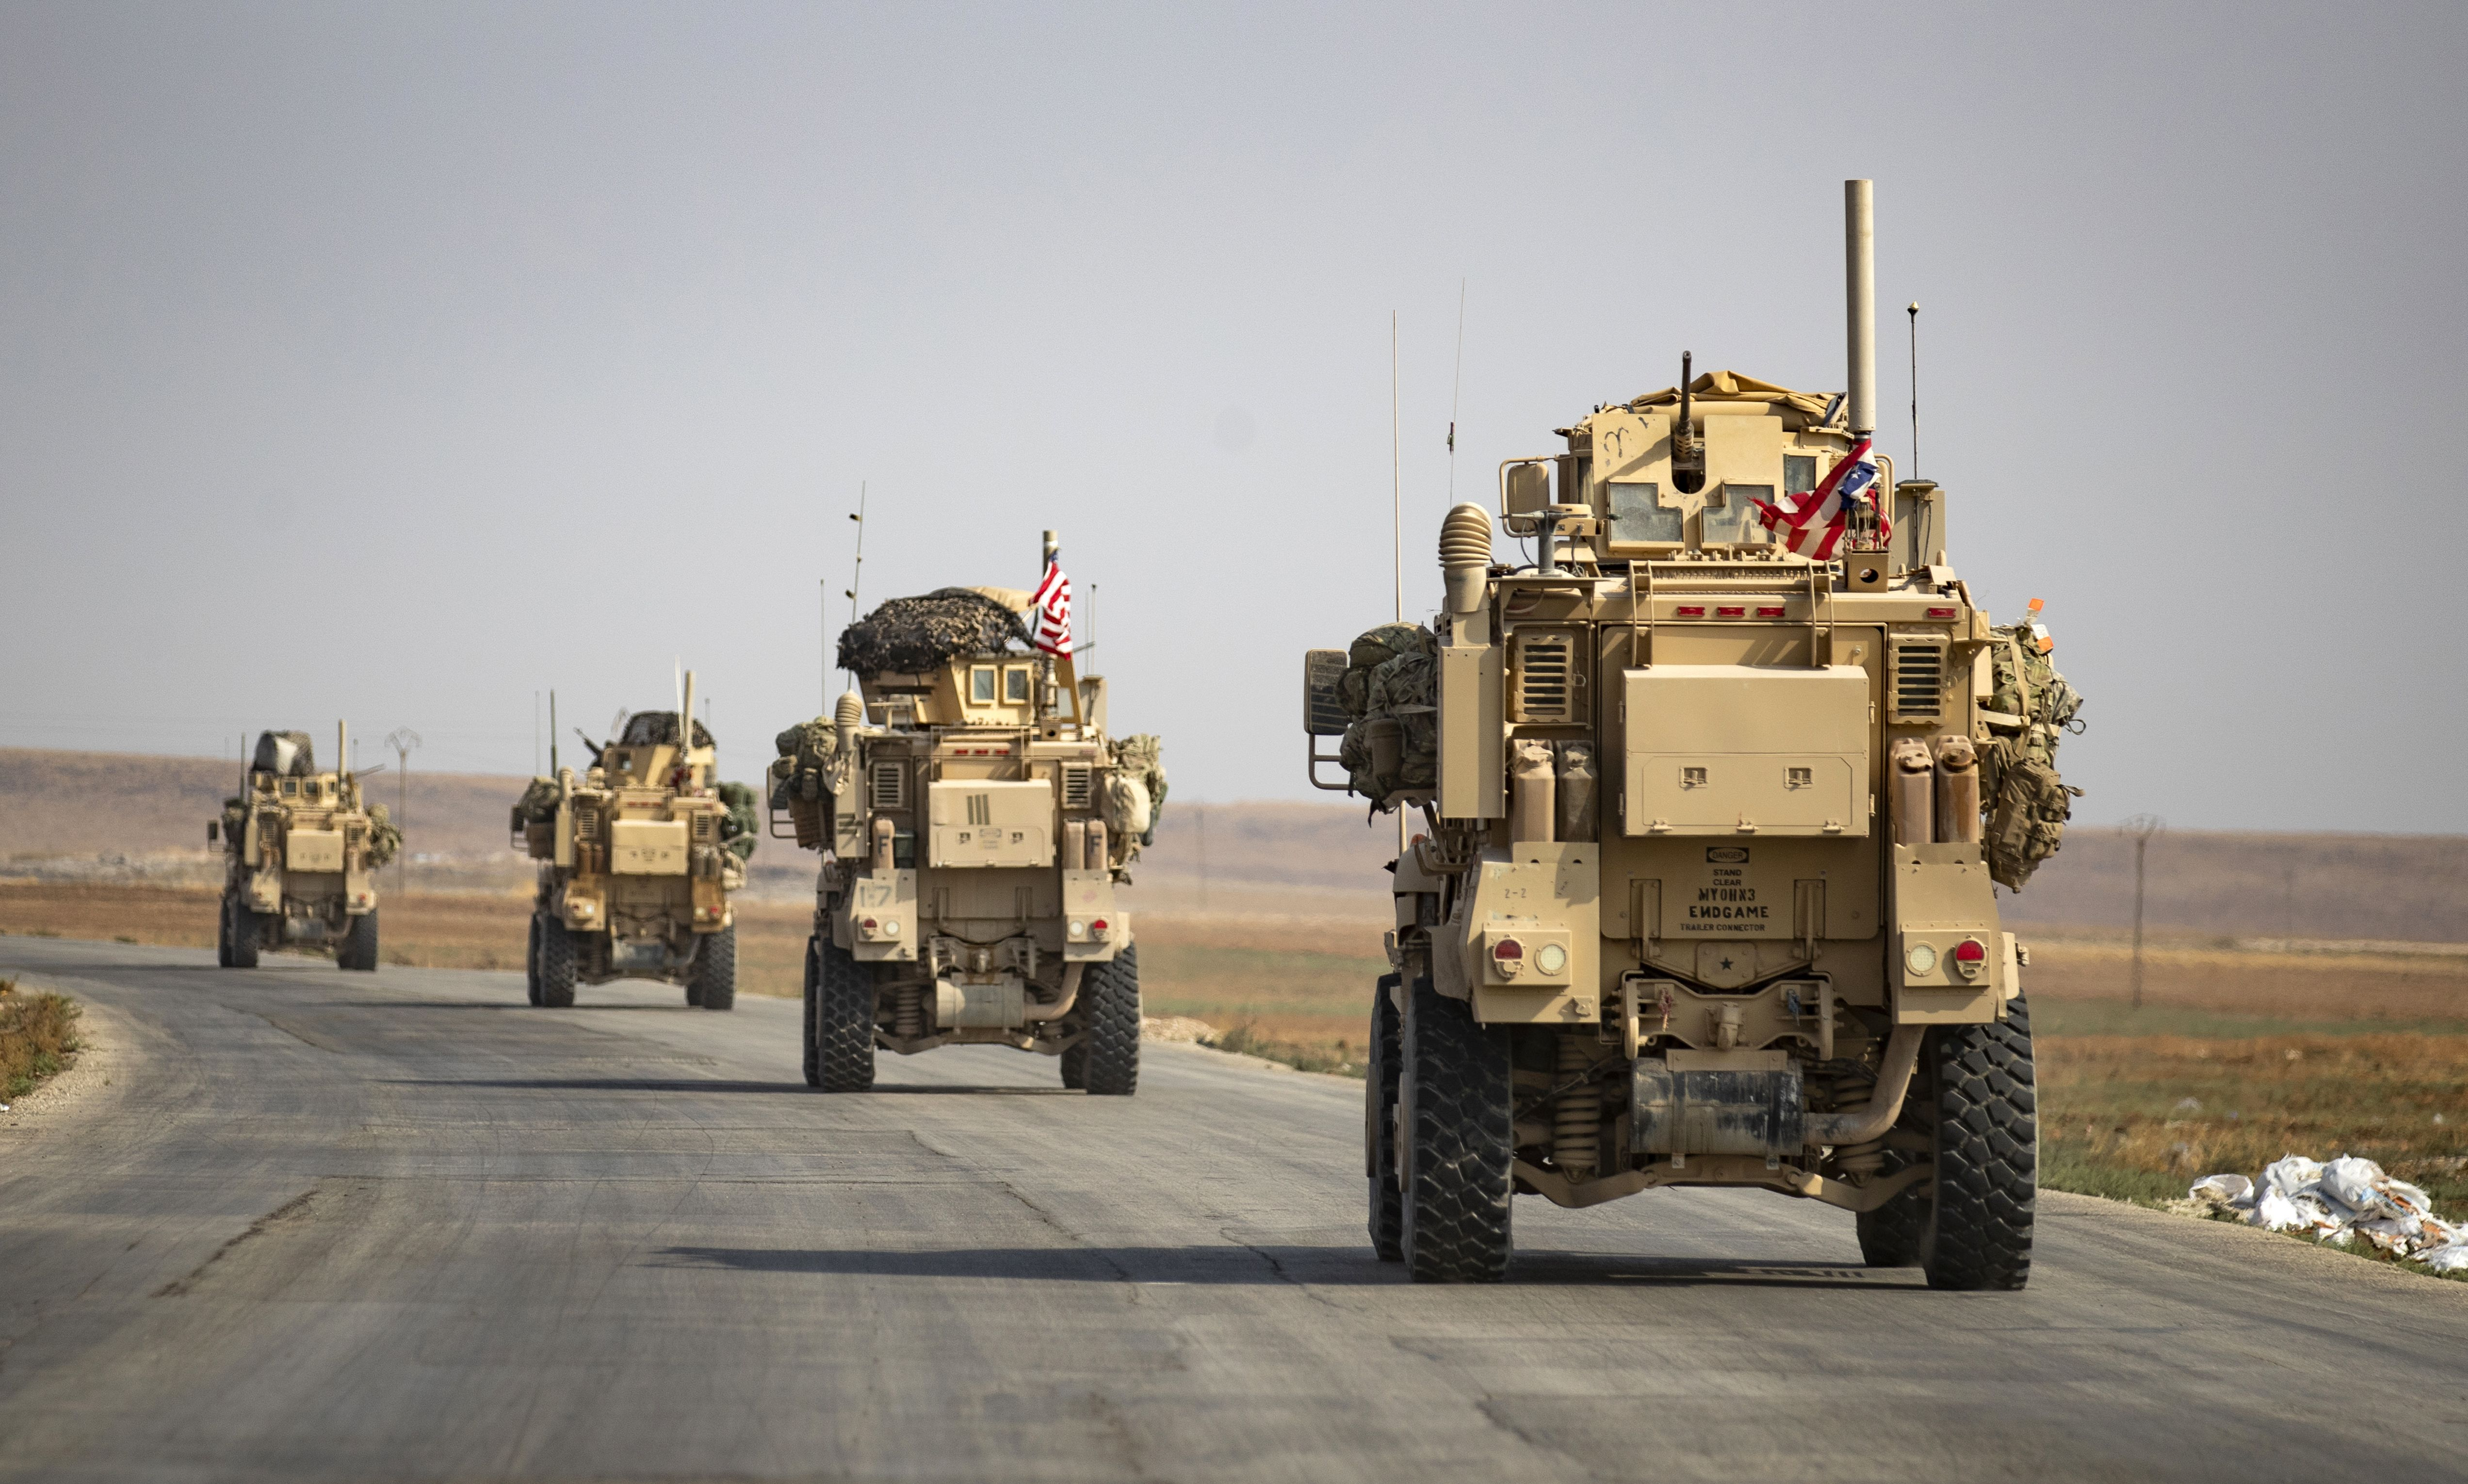 U.S. military vehicles drive on a road after US forces pulled out of their base in the Northern Syrian town of Tal Tamr, on Oct. 20, 2019. (Delil Souleiman/AFP via Getty Images)